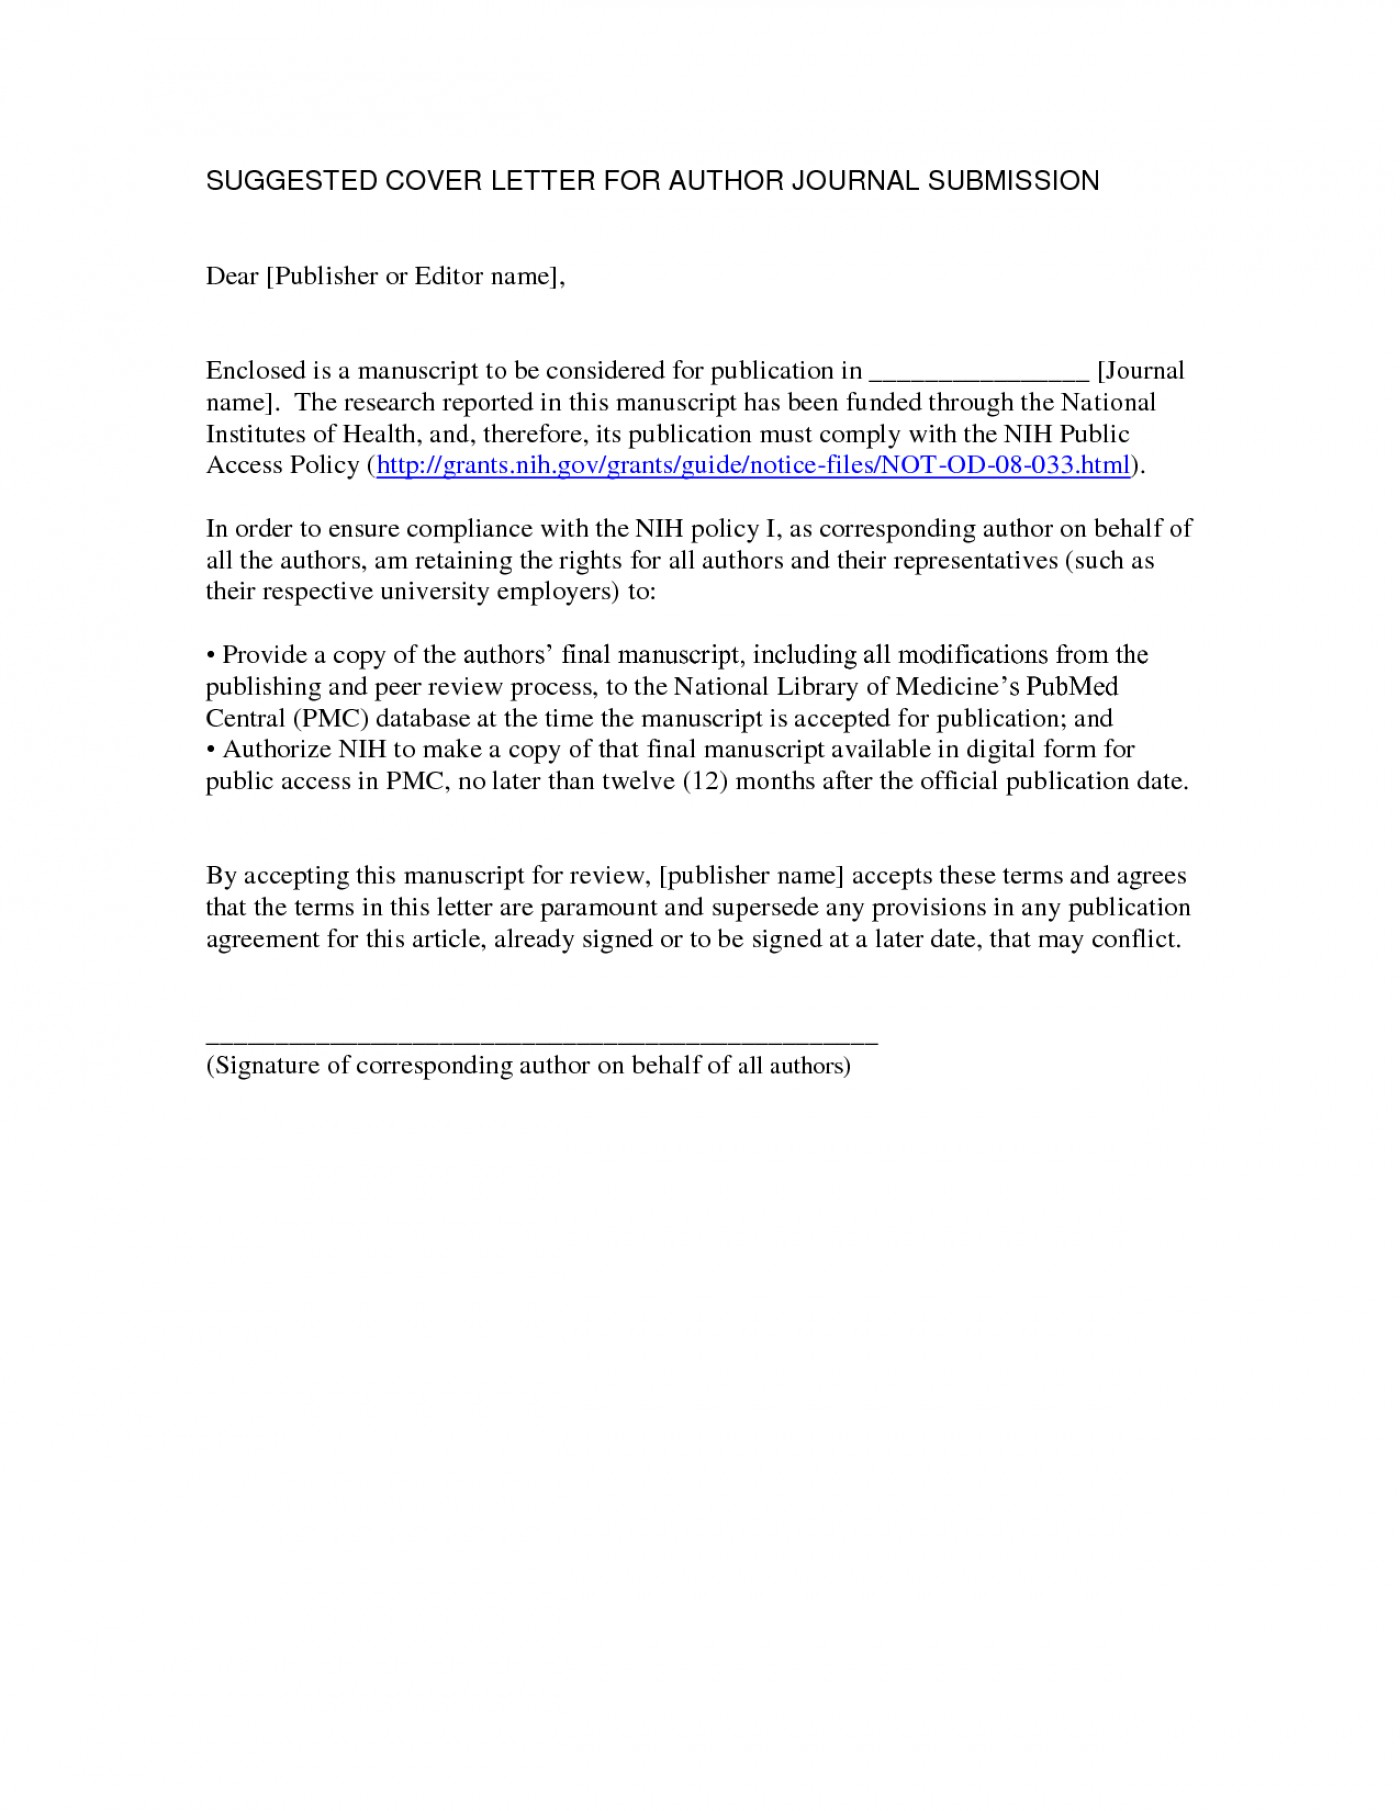 022 Research Paper Editor Cover Letters For Writing ...